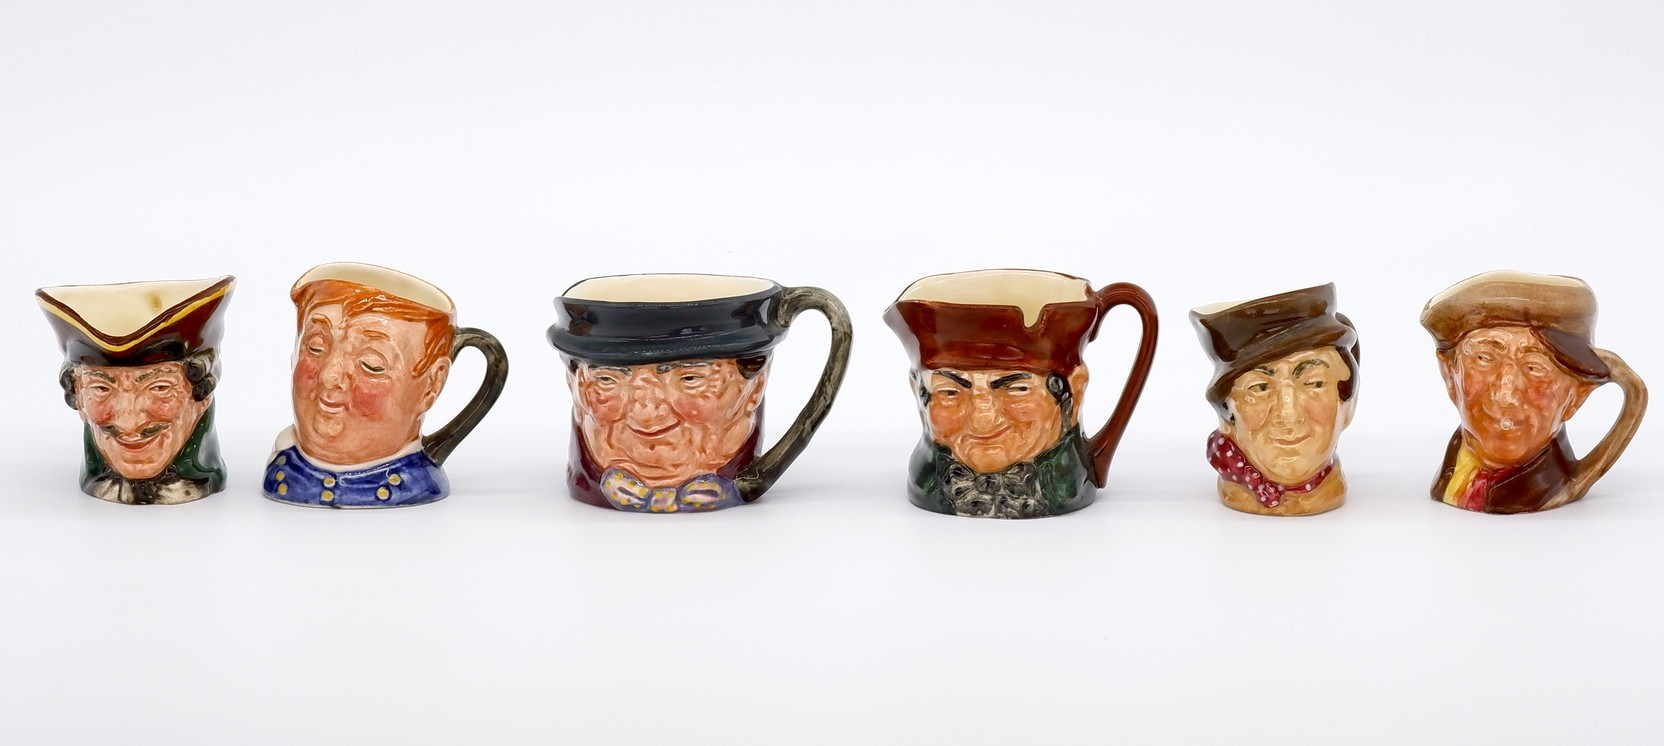 'Collection of Six Miniature Royal Doulton Toby Jugs With A Mark'